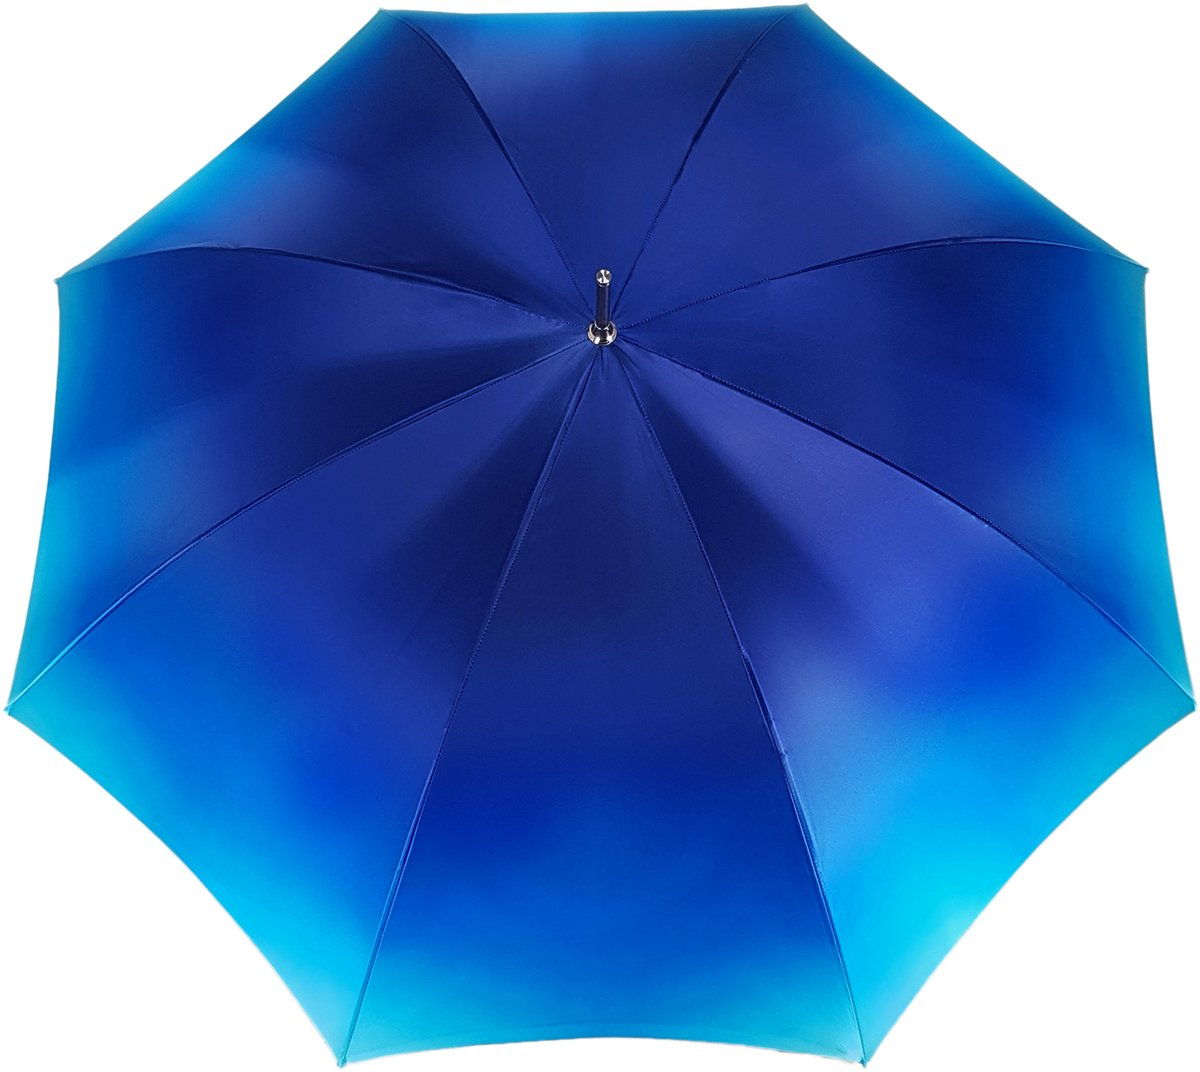 Astonishing new exclusive Leopardized Umbrella By  il Marchesato